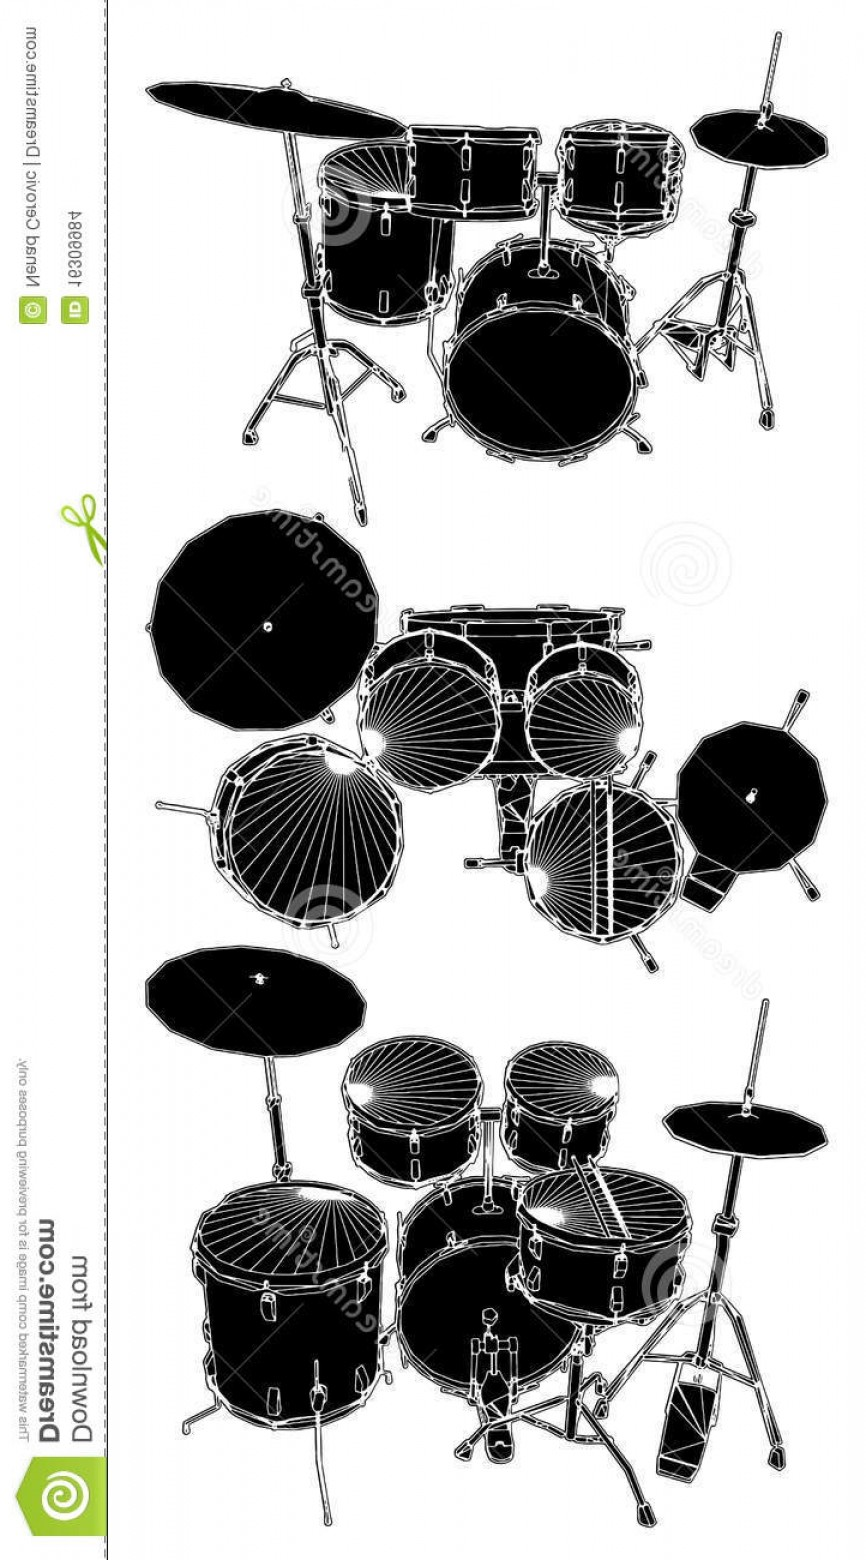 Drum Vector Art: Stock Images Drums Vector Image